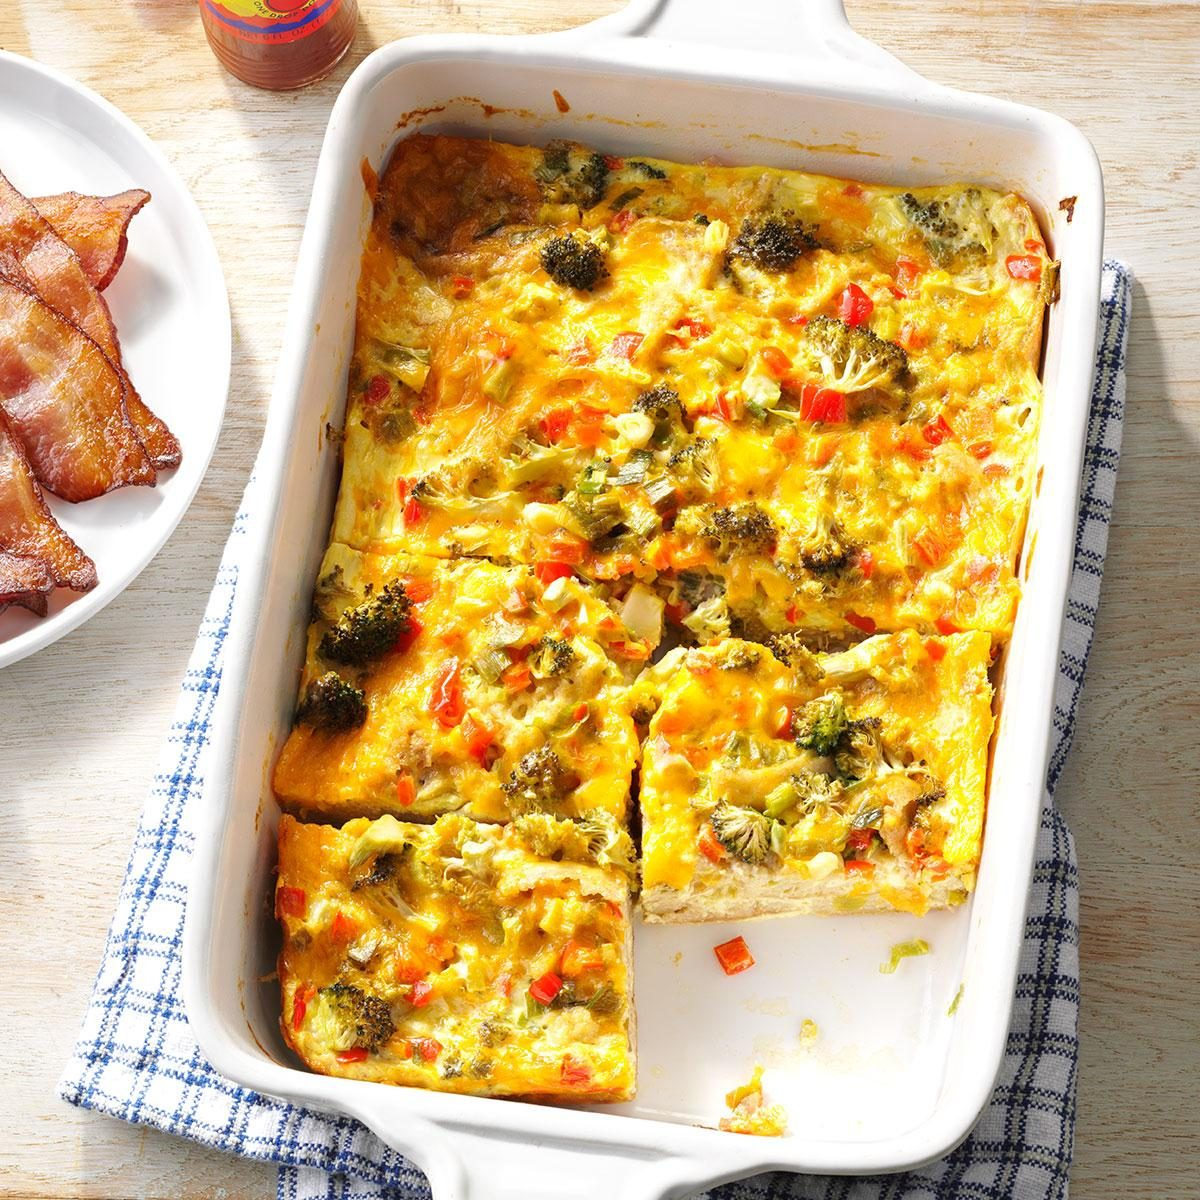 6 Diabetic-Friendly 13x9 Breakfast Casseroles